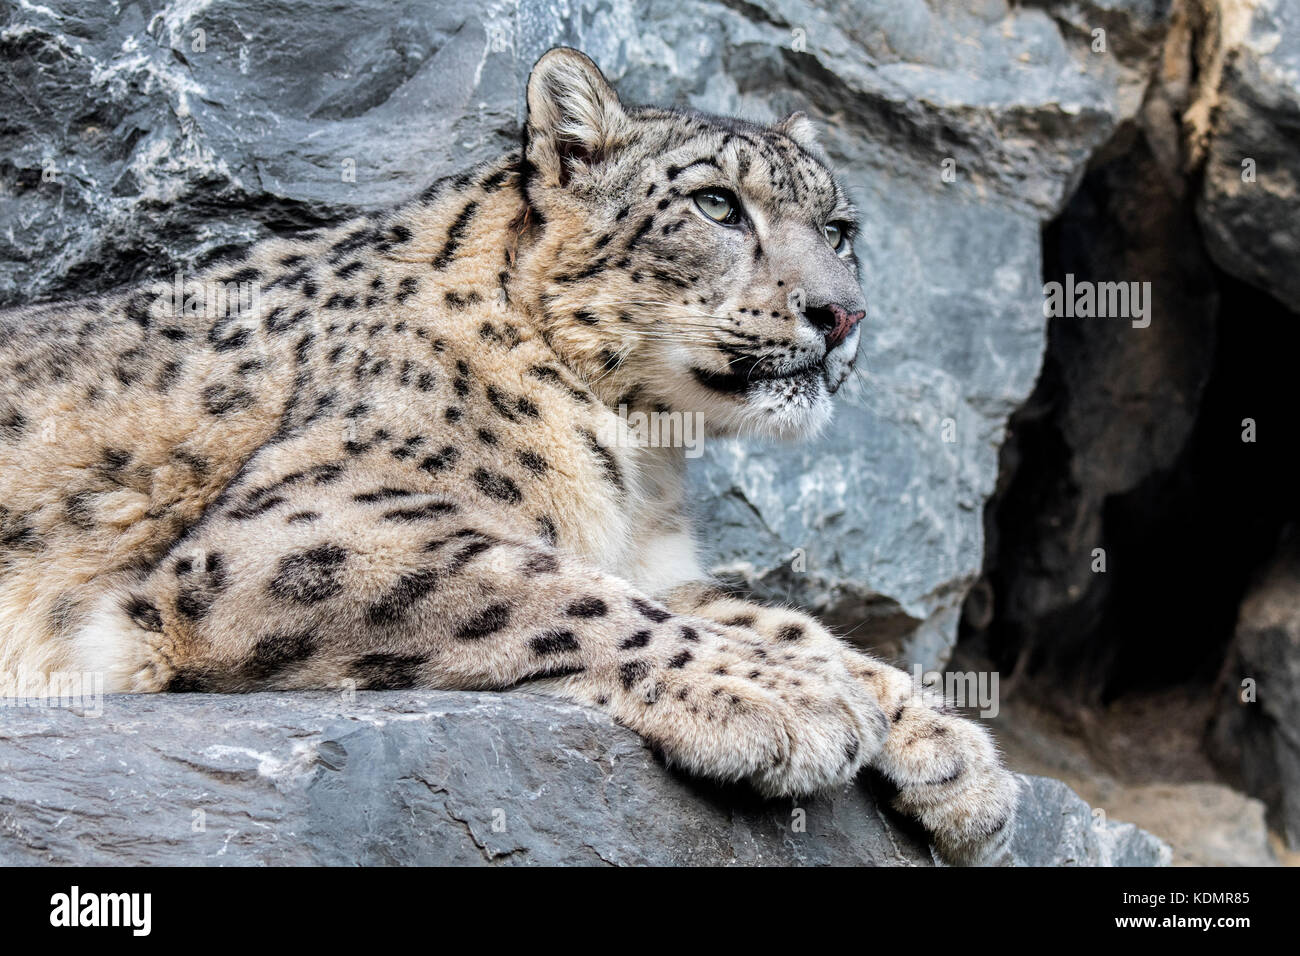 Snow leopard / ounce (Panthera uncia / Uncia uncia) resting on rock ledge in cliff face near cave entrance - Stock Image